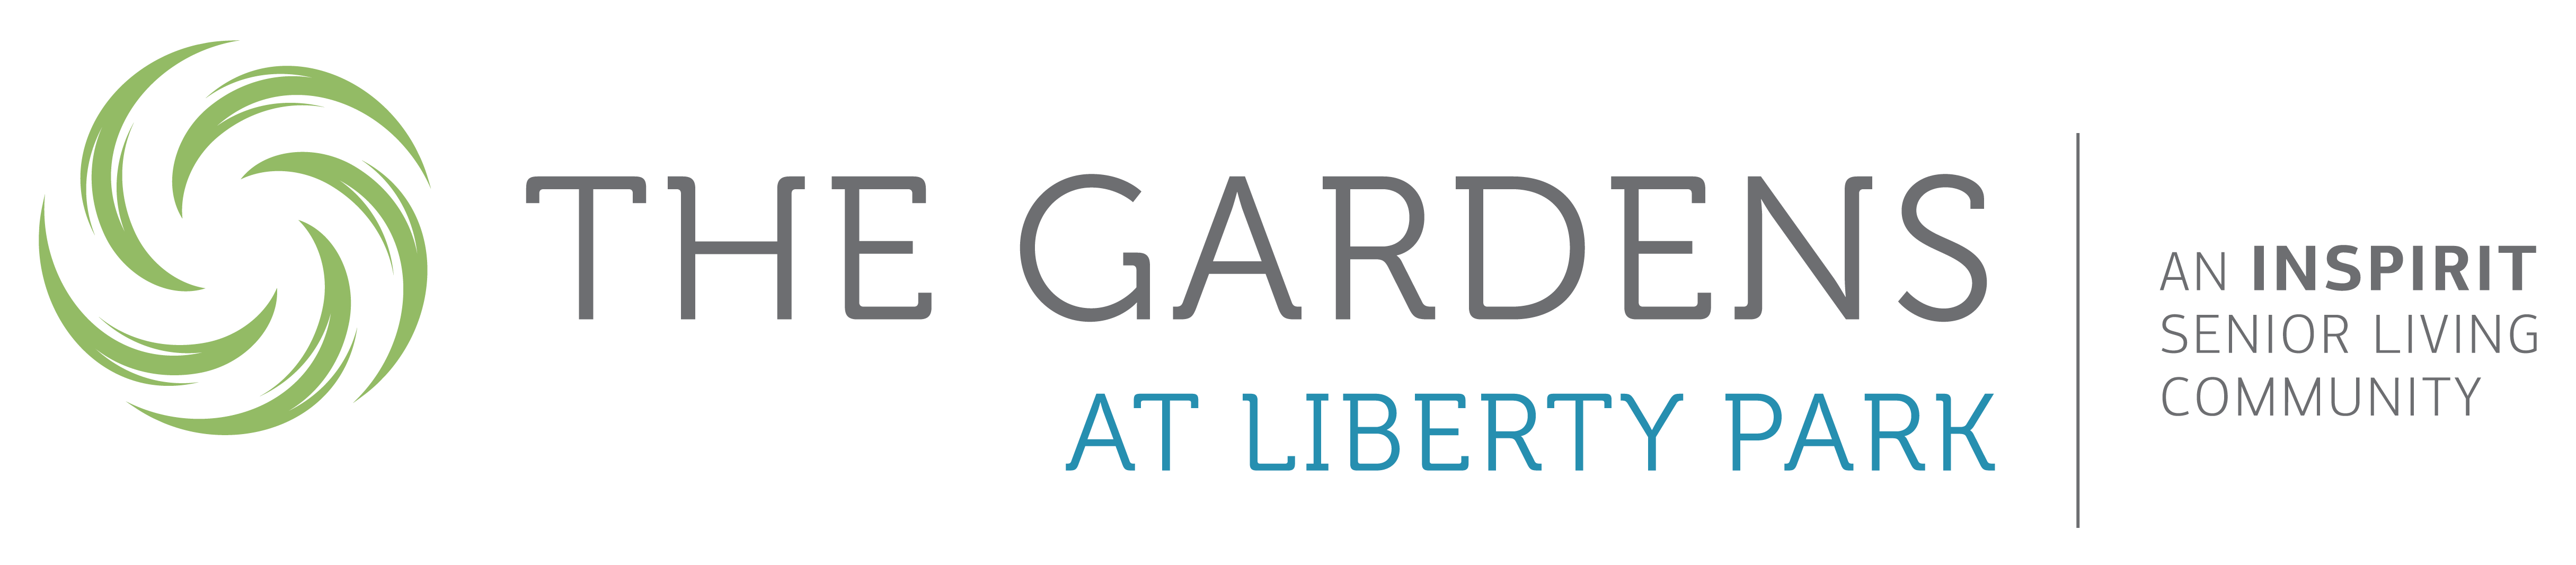 The Gardens at Liberty Park logo